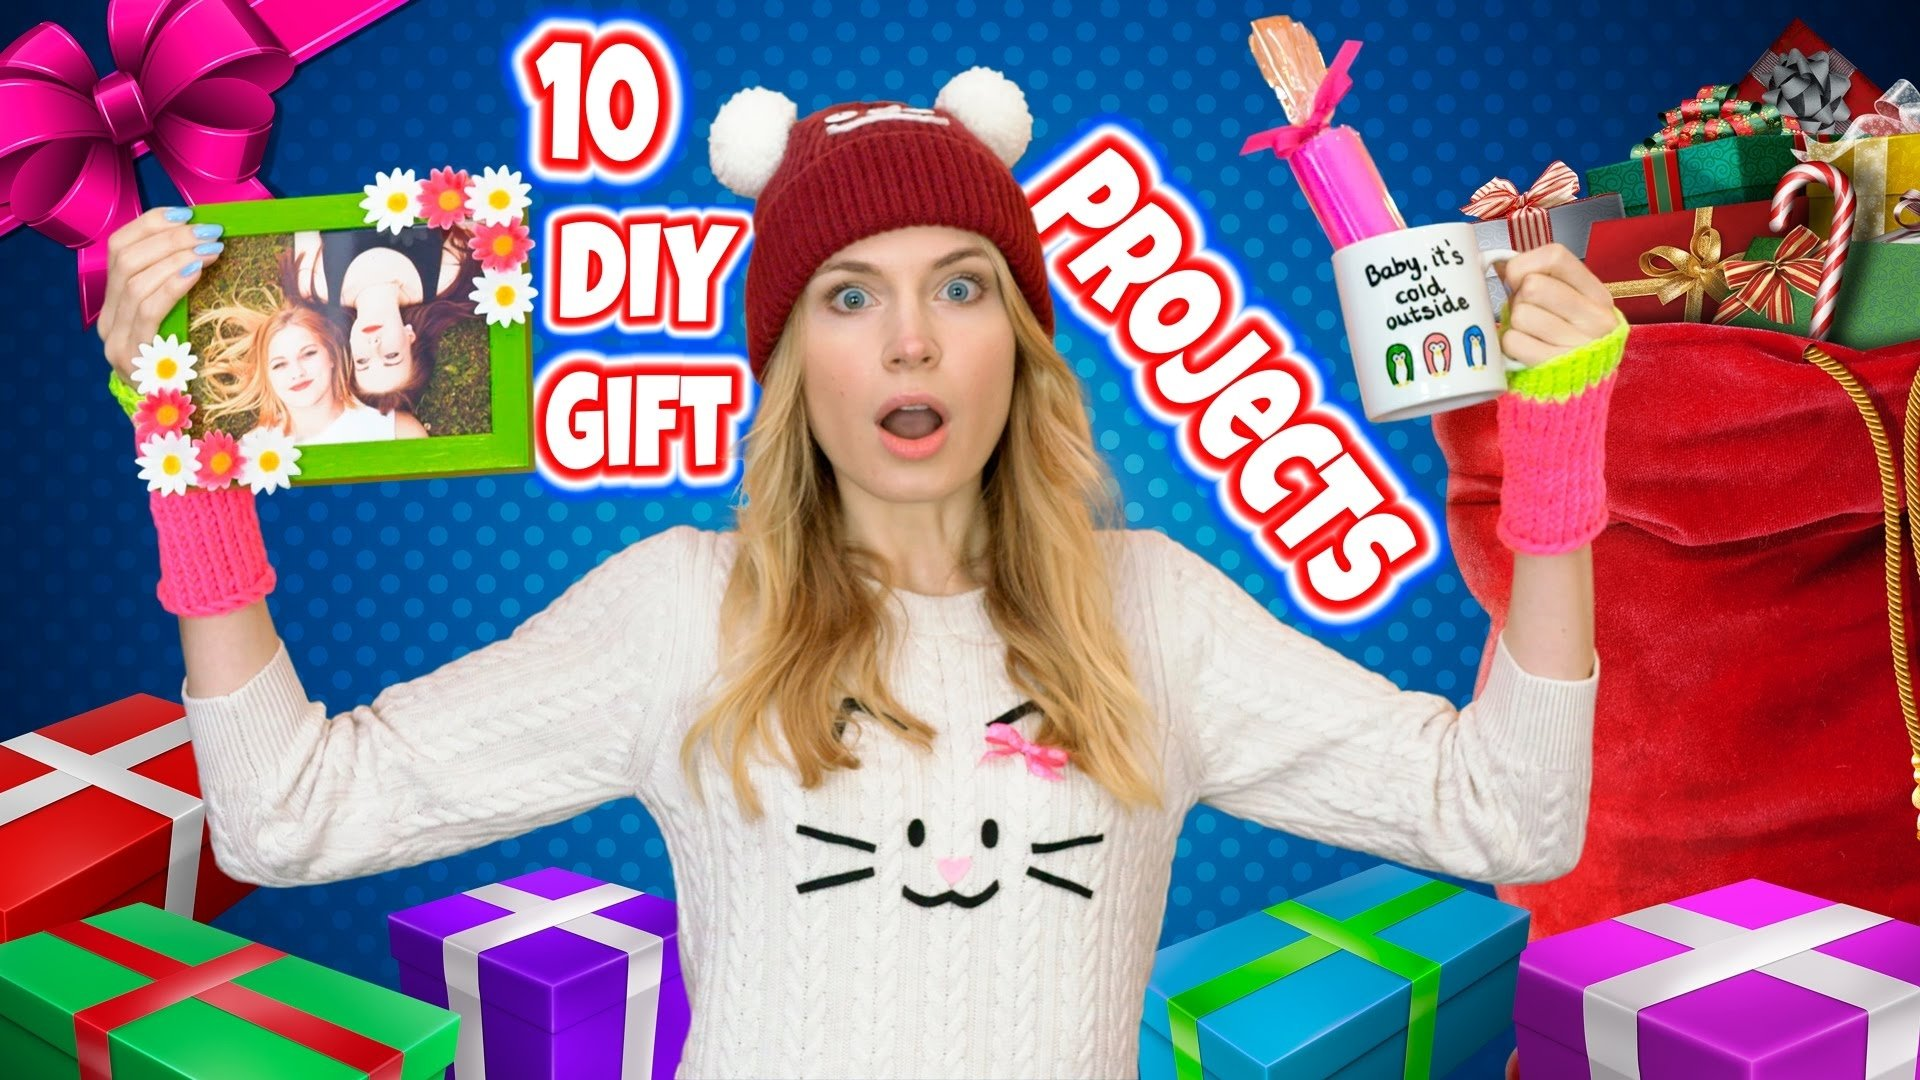 10 Attractive Gift Ideas For 21 Year Old Female Diy Christmas Gifts